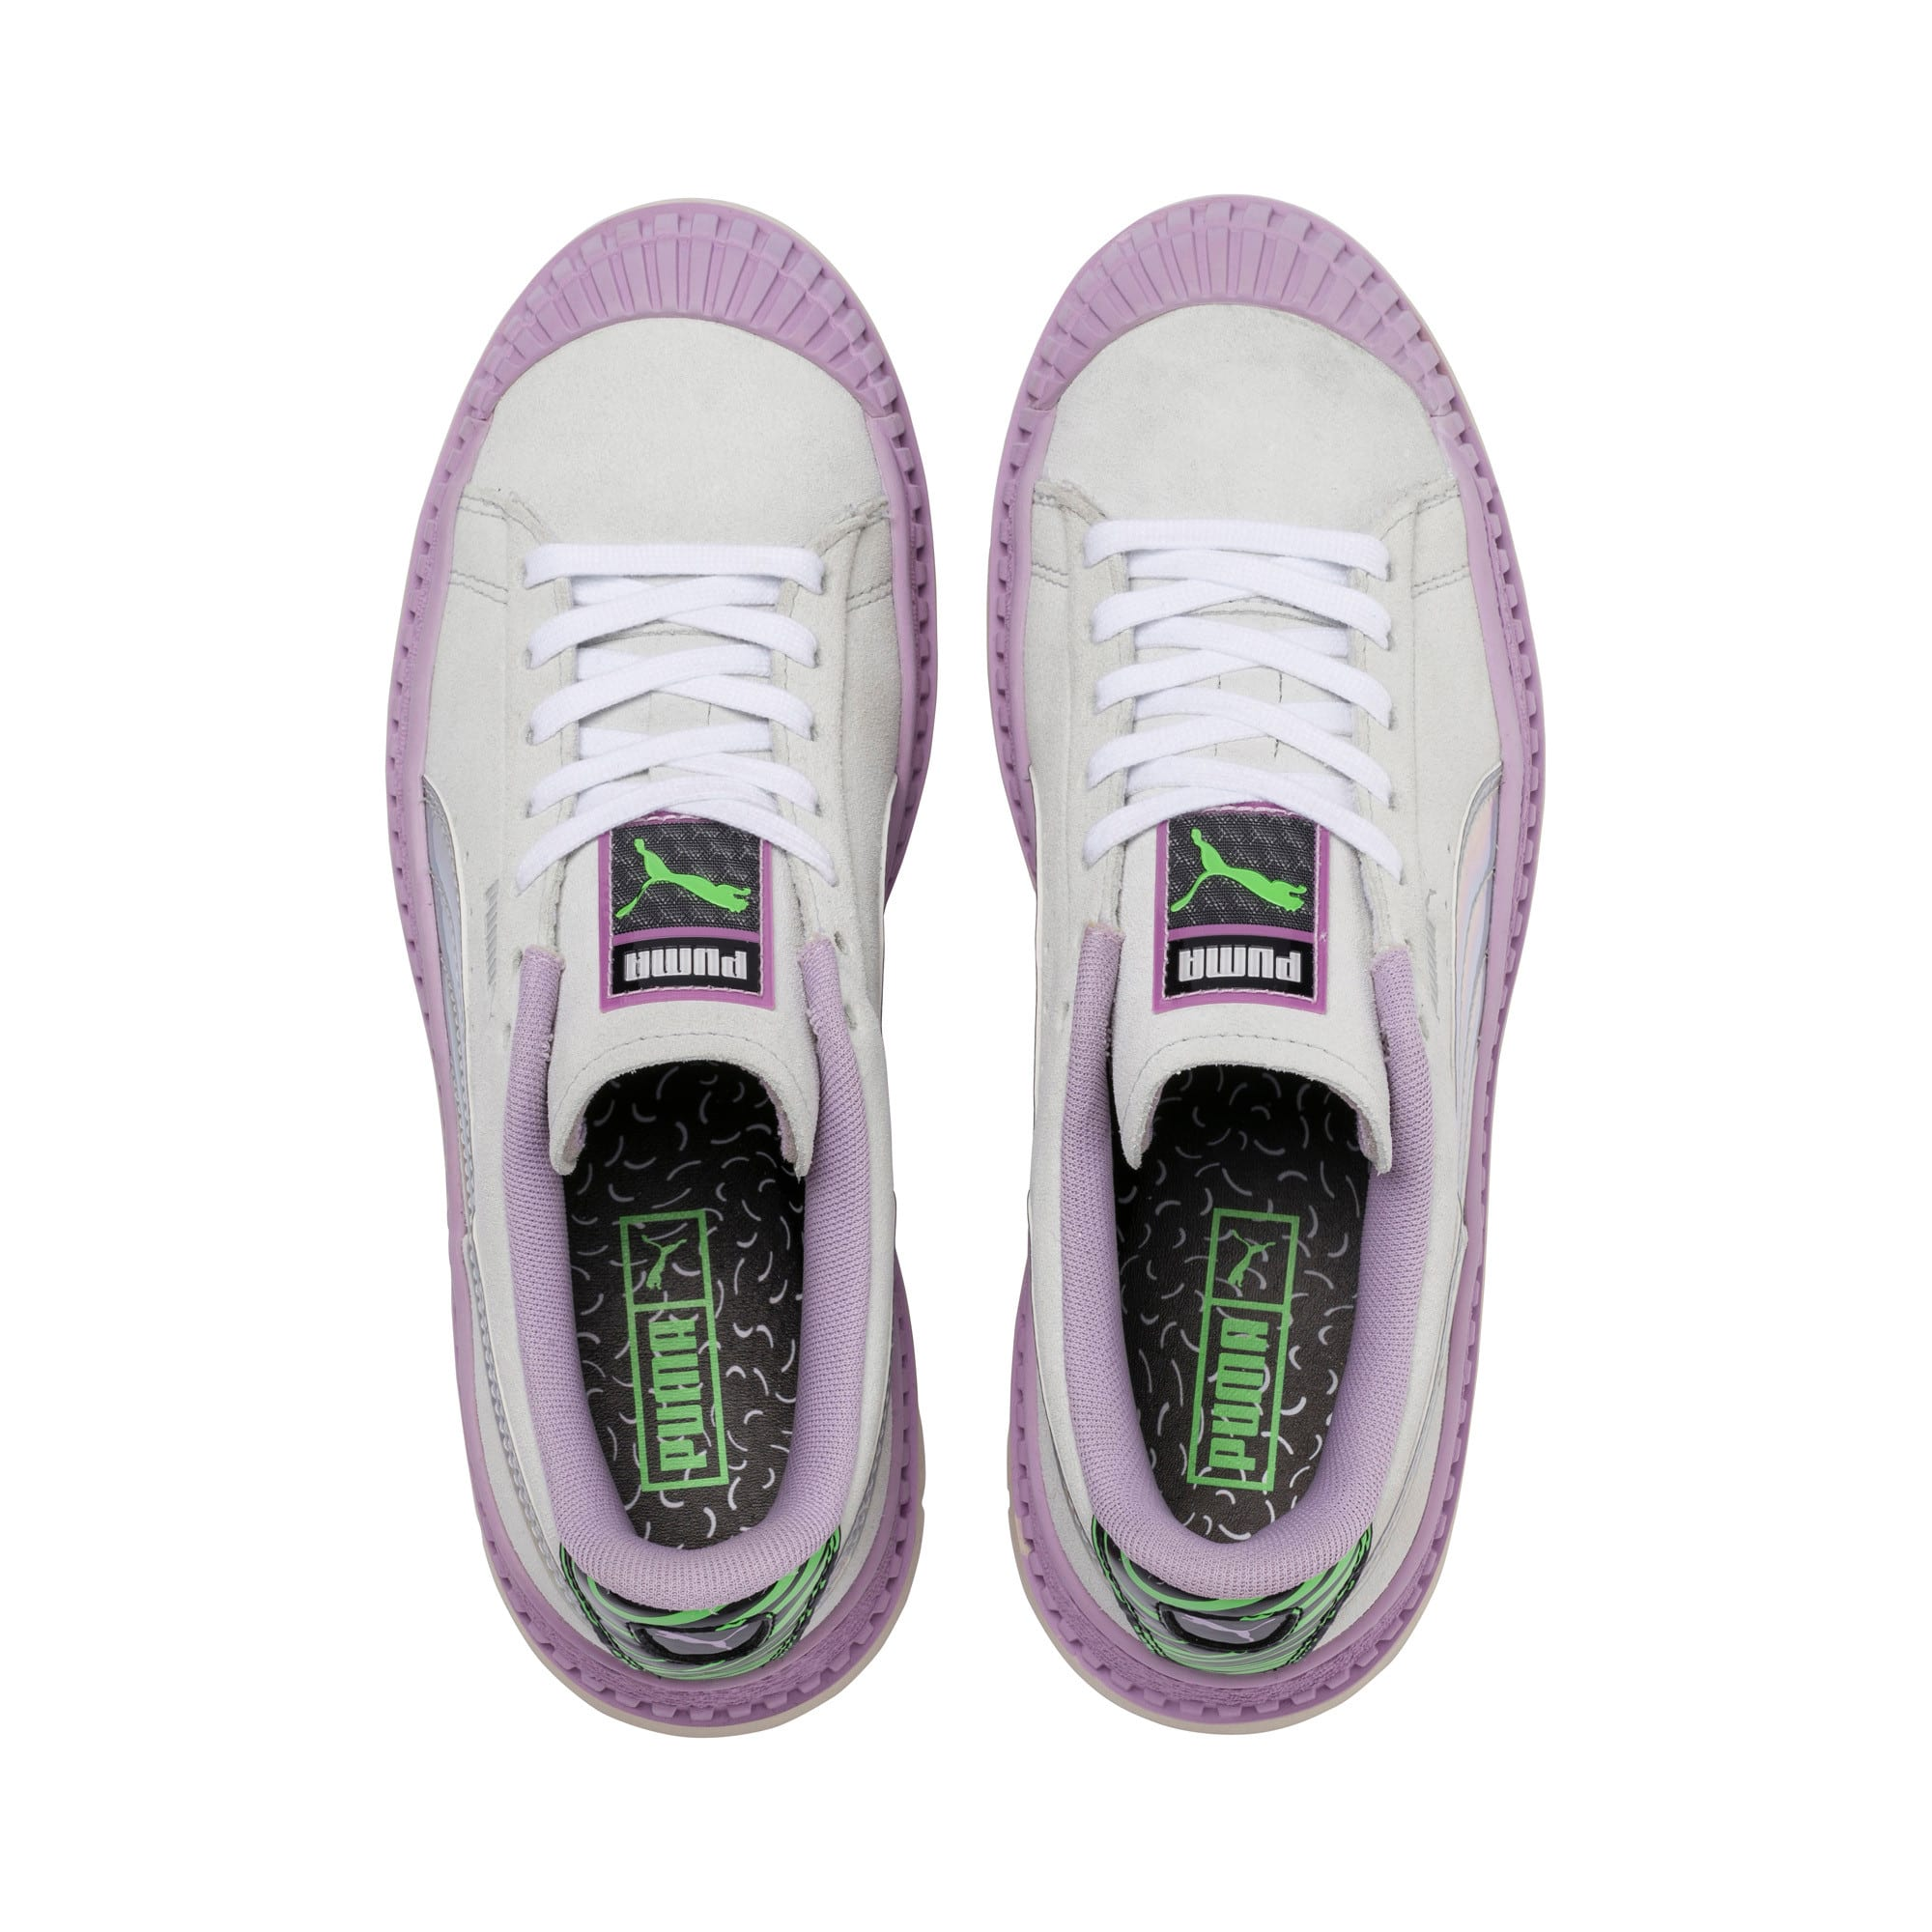 Thumbnail 6 of Utility Dimension Women's Sneakers, Silver Birch-Orchid Bloom, medium